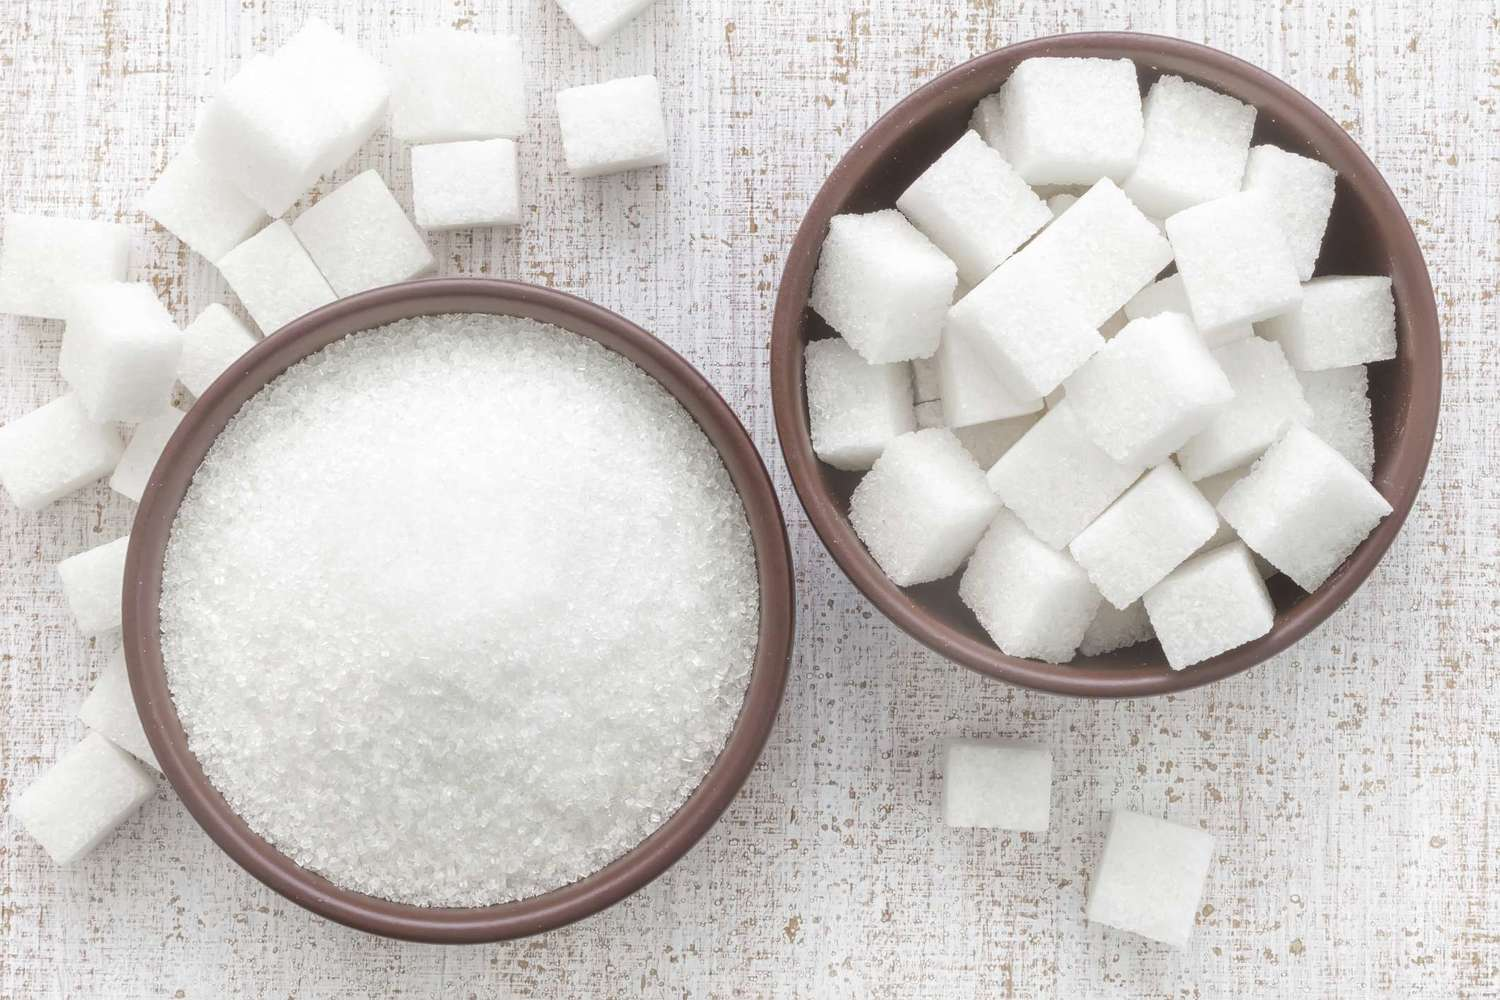 What is Excessive Sugar Intake?